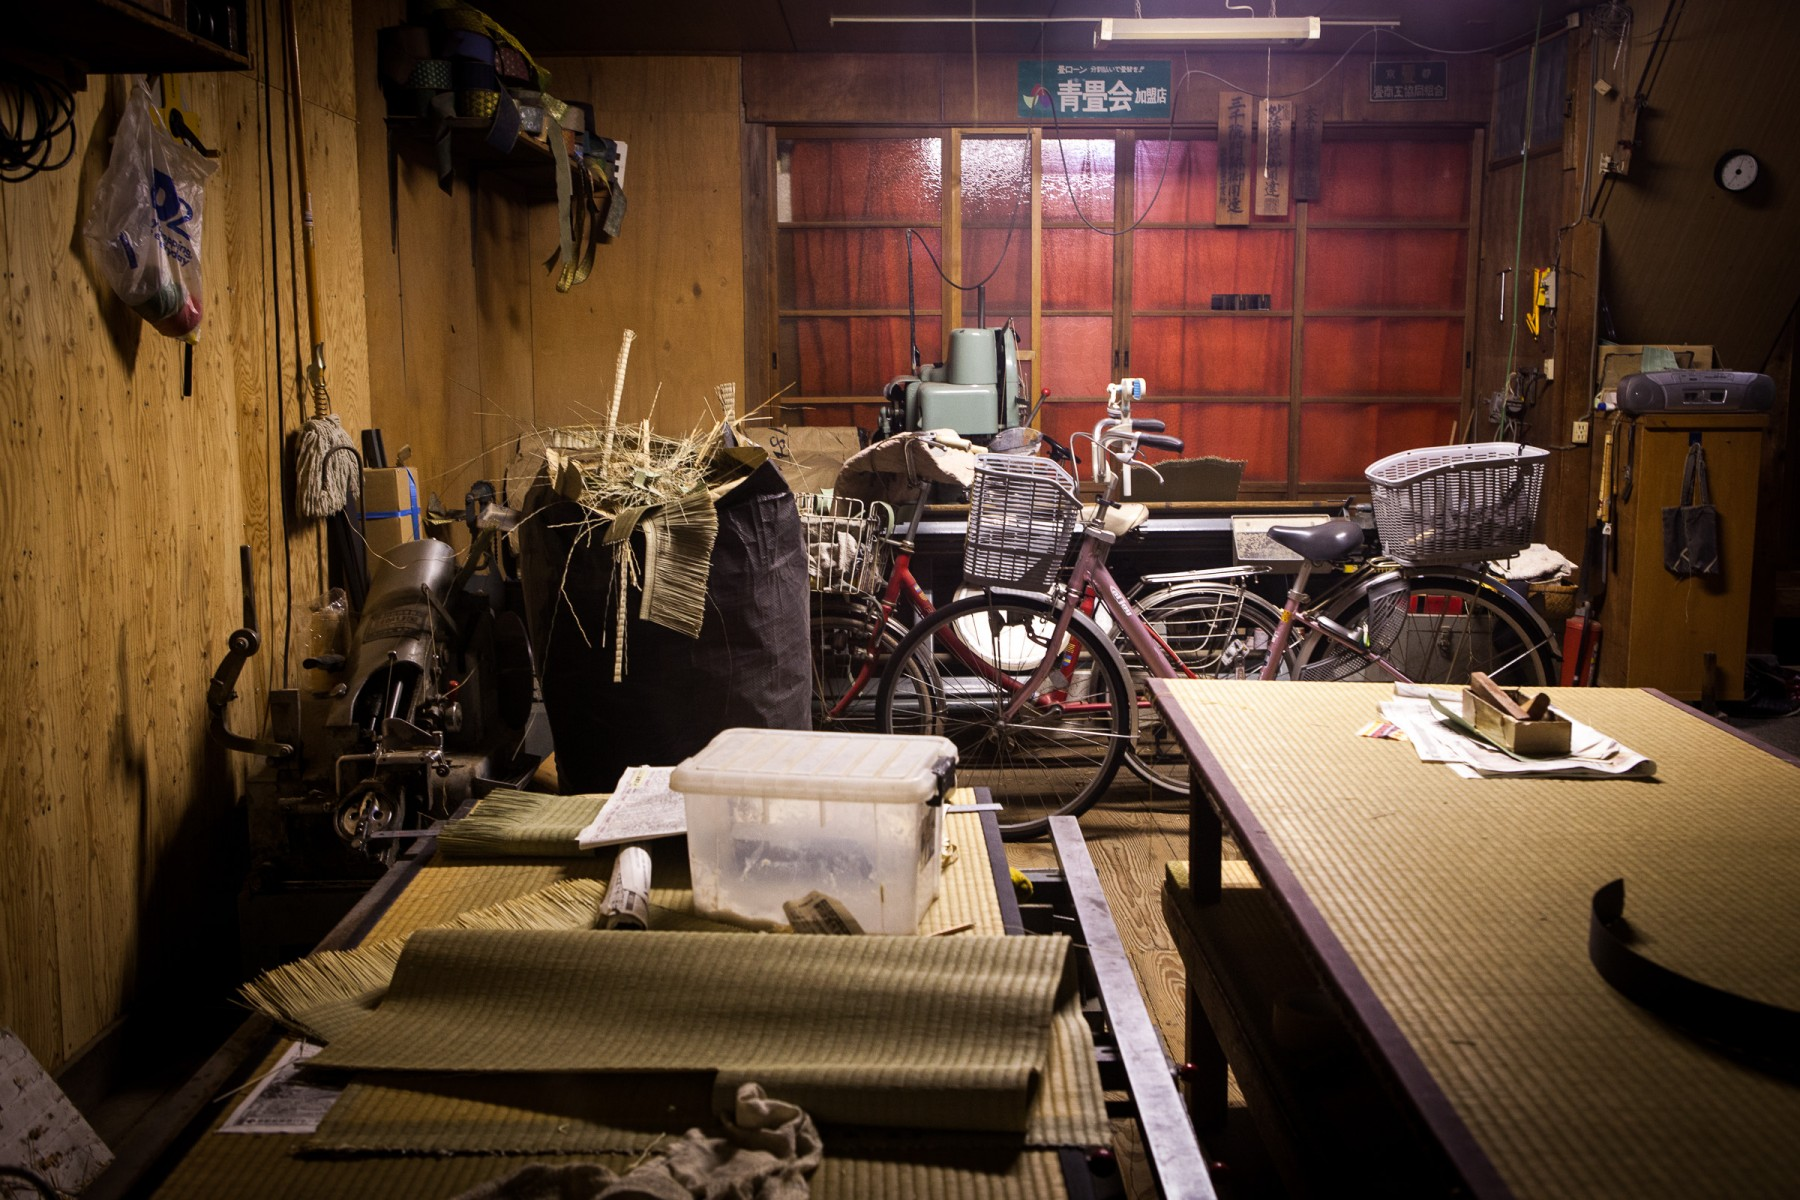 A rare look at a 'messy' garage in suburban Kyoto.